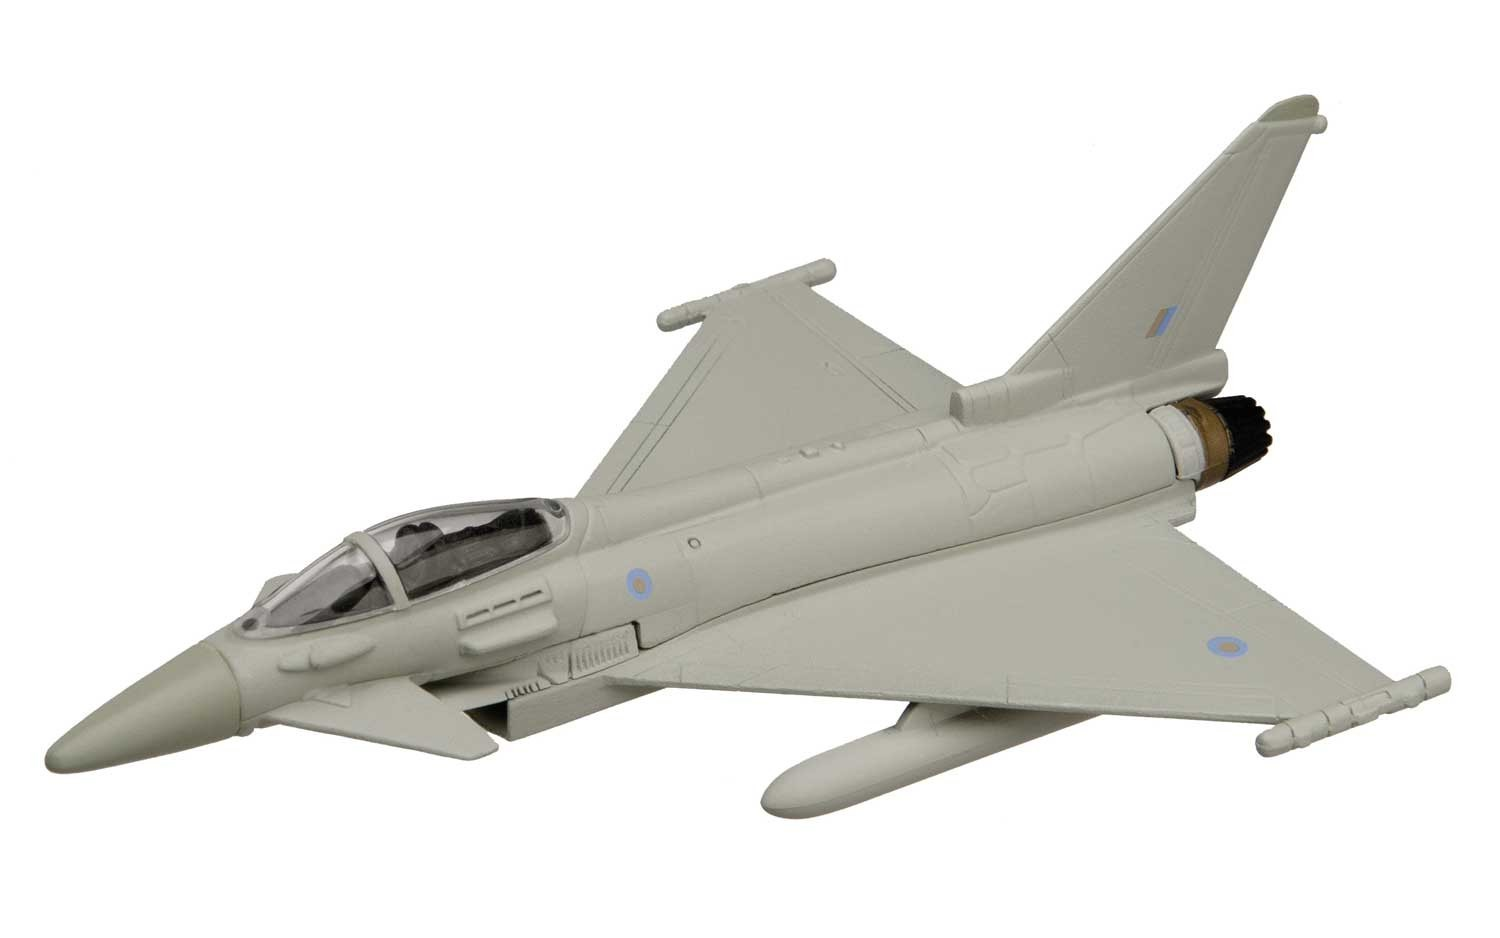 Corgi: Showcase Eurofighter Typhoon - Diecast Model image